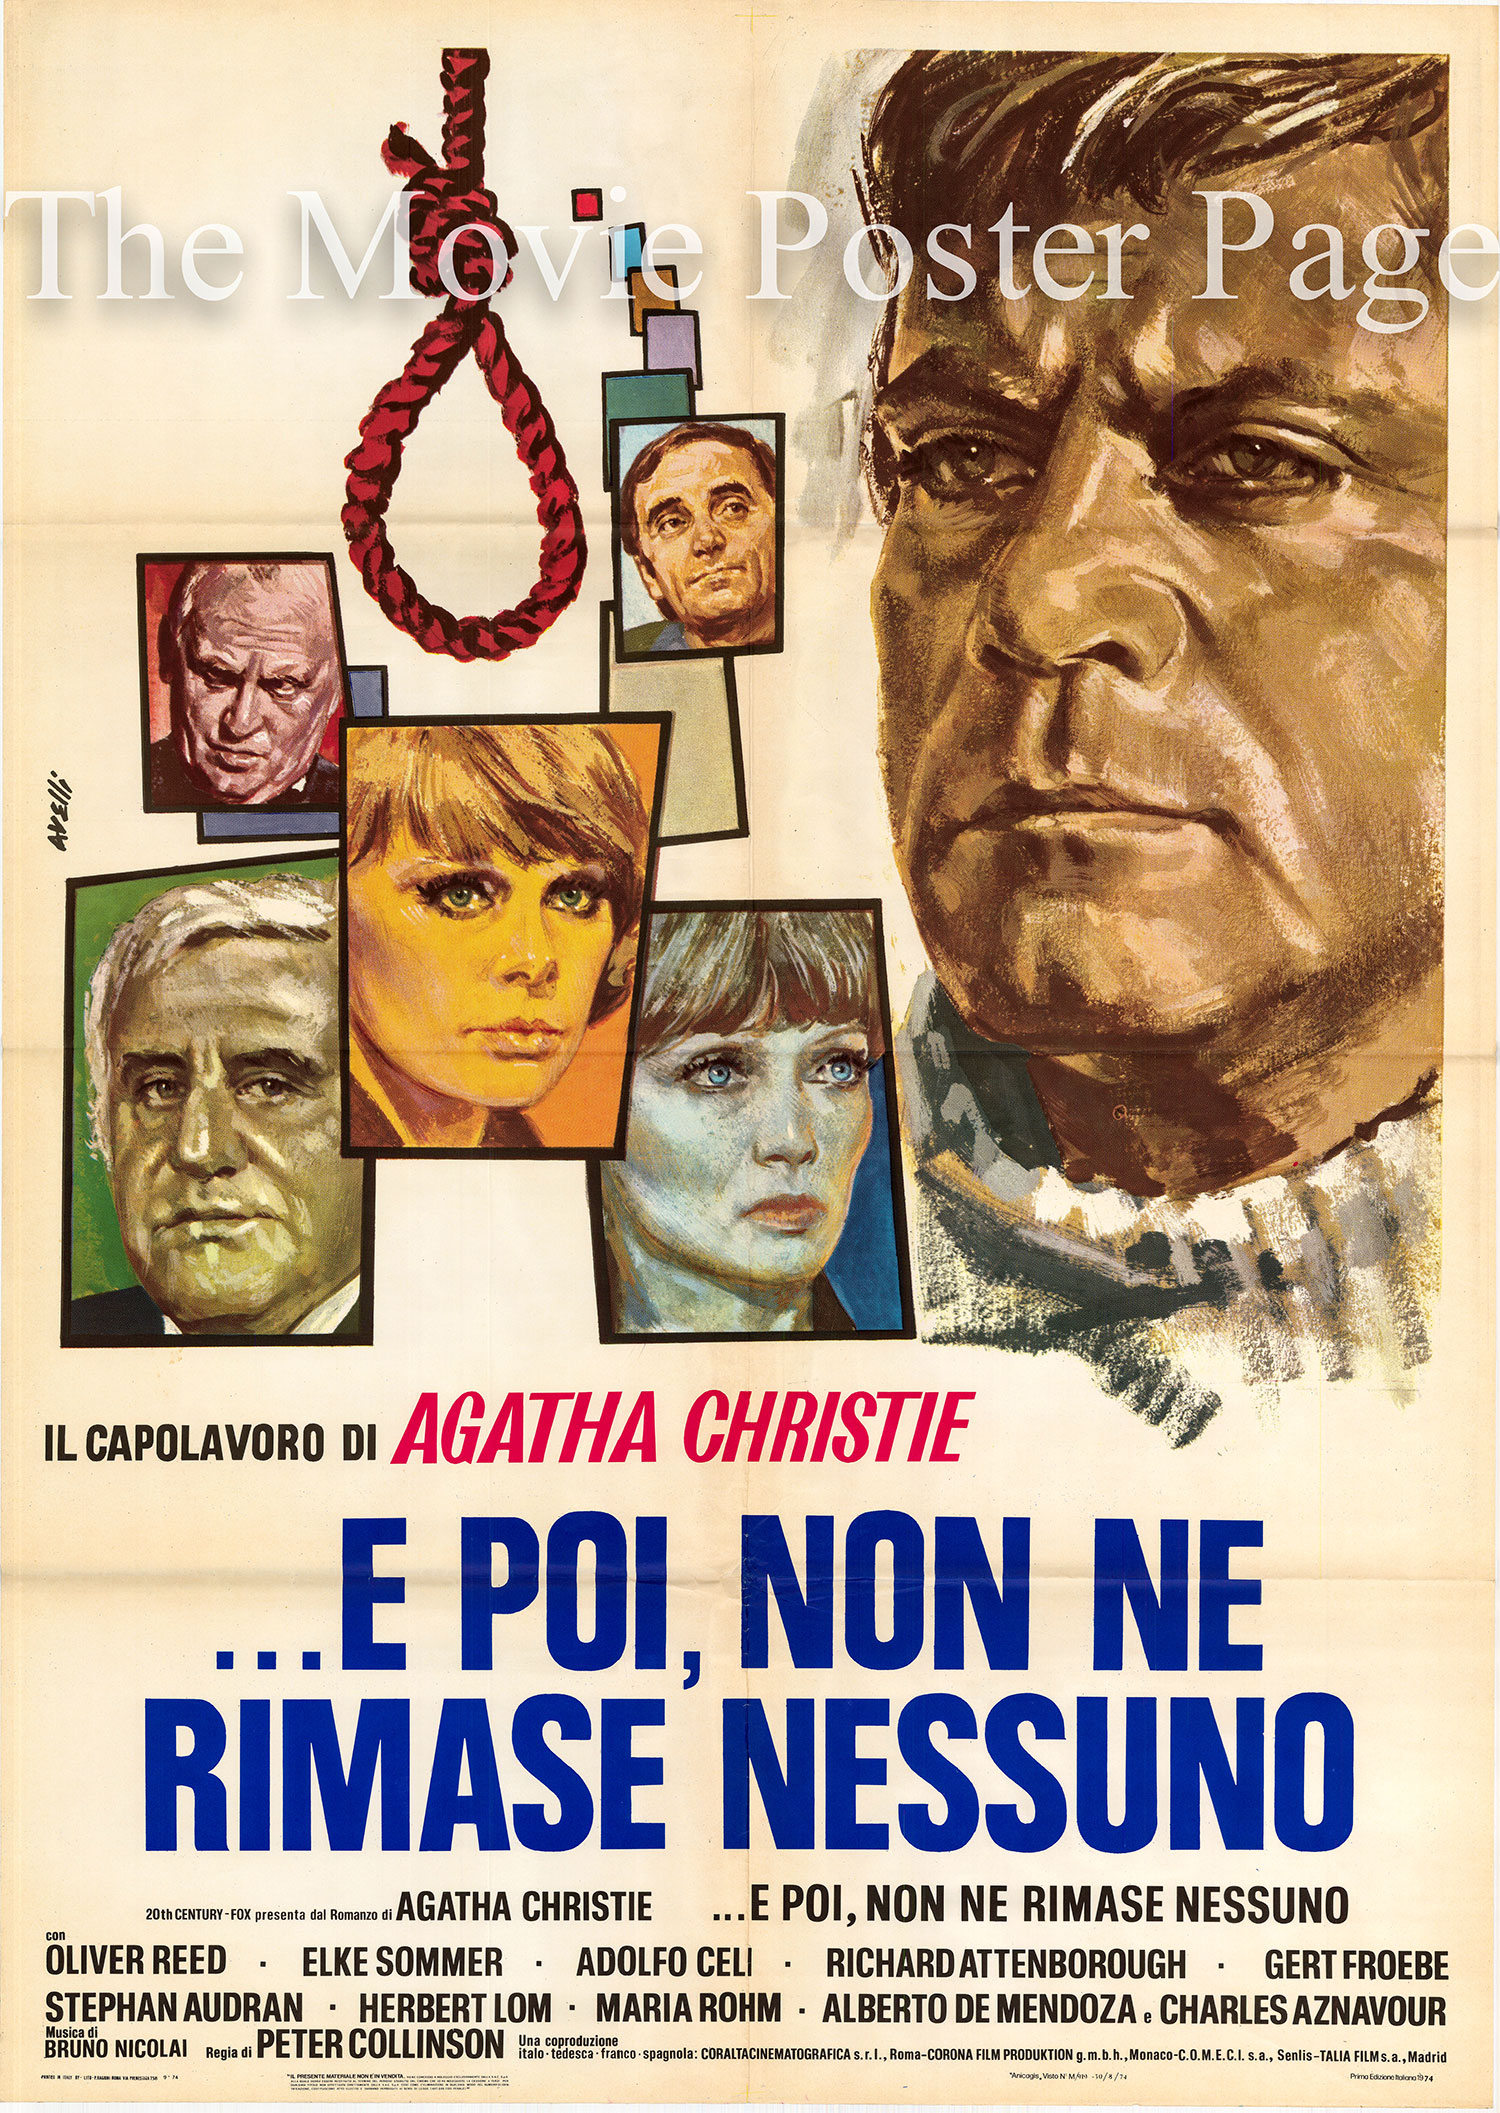 Pictured is an Italian two-sheet promotional poster for the 1974 Peter Collinson film And Then There were None starring Charles Aznavour as Michael Raven.